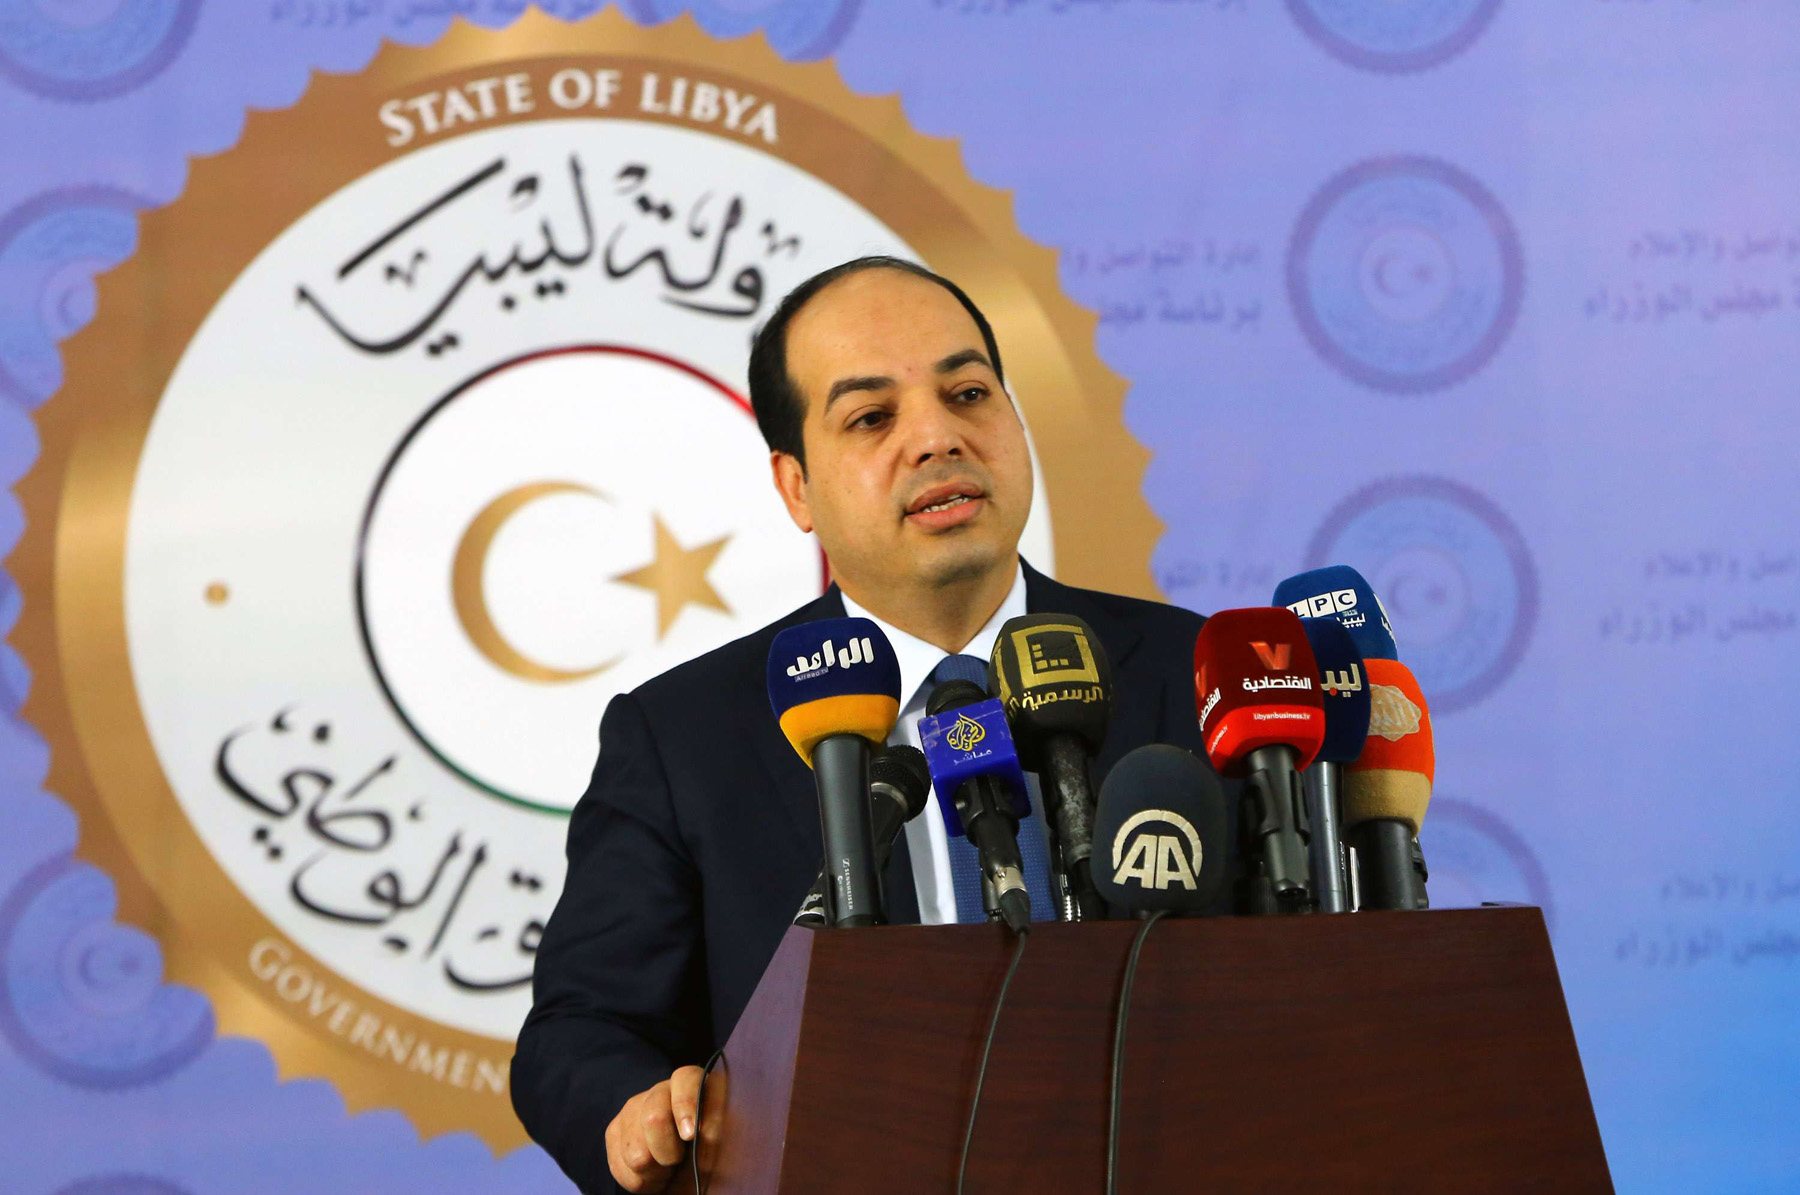 A file picture of Libyan deputy prime minister of the Government of National Accord (GNA), Ahmed Maiteeq, speaking at news conference. (AFP)